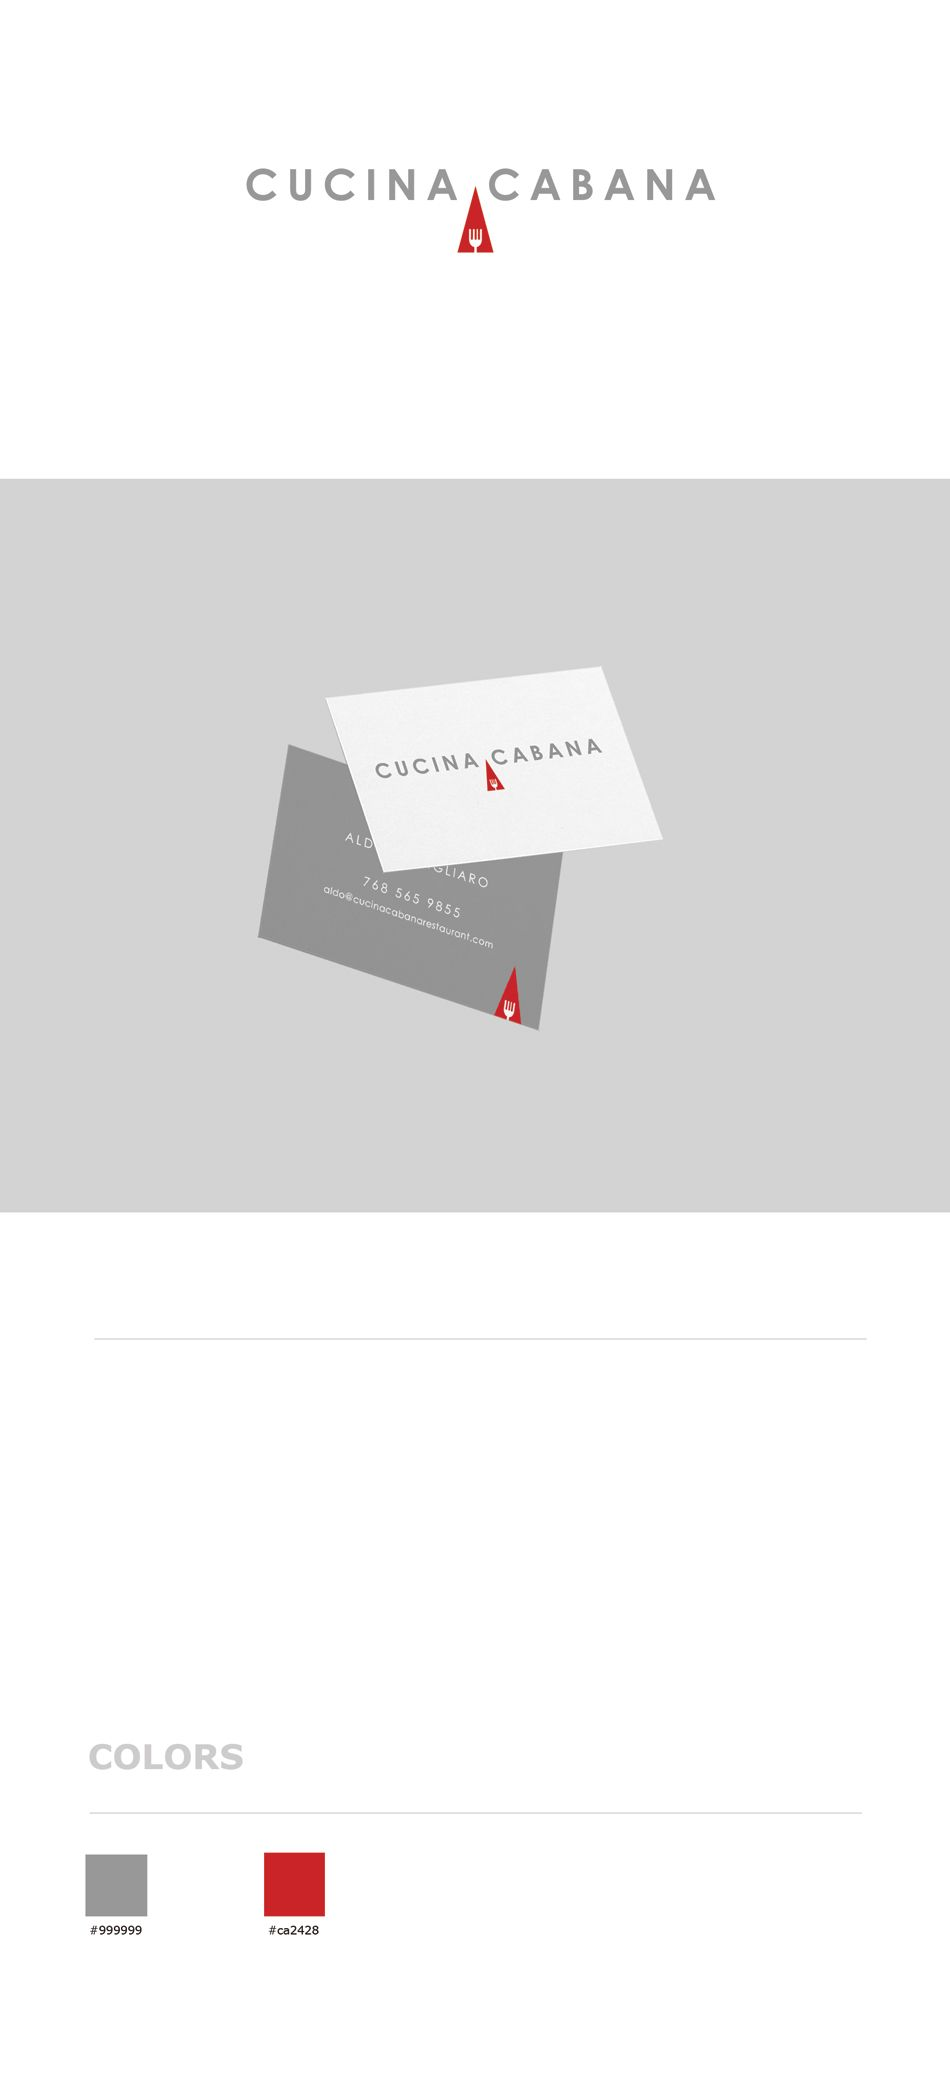 Cucina Cabana Owner Mcreations Branding Studio Mceations On Pinterest